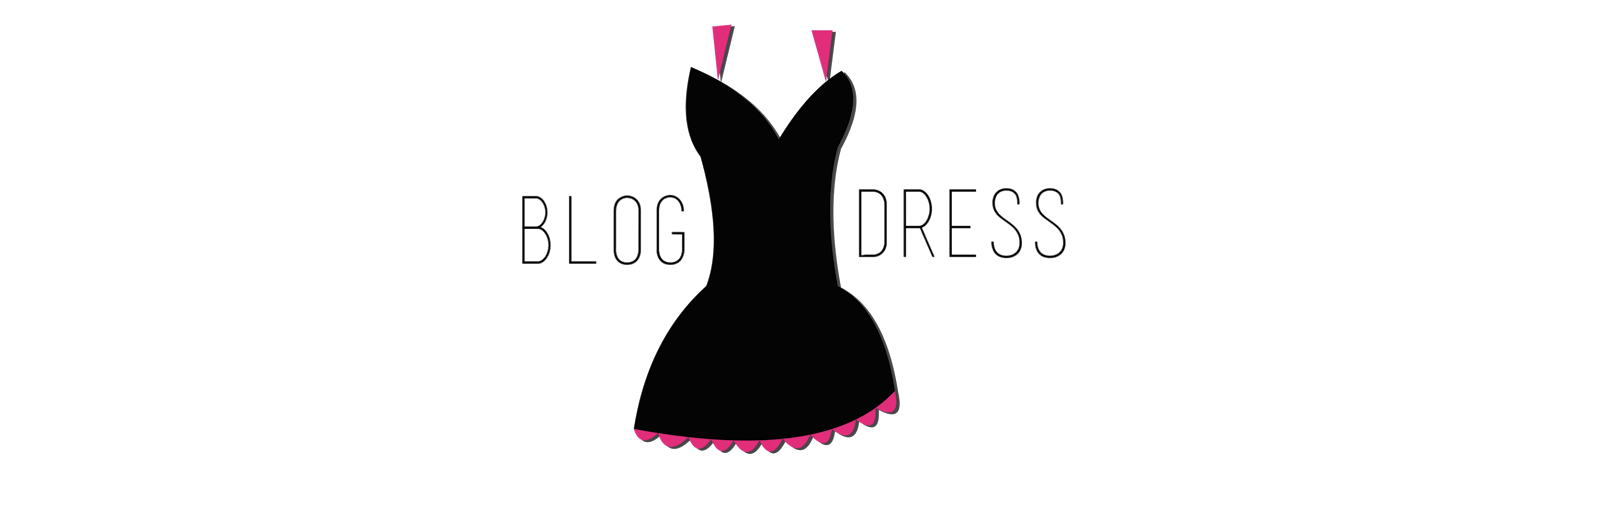 Blog Dress - by Dressa